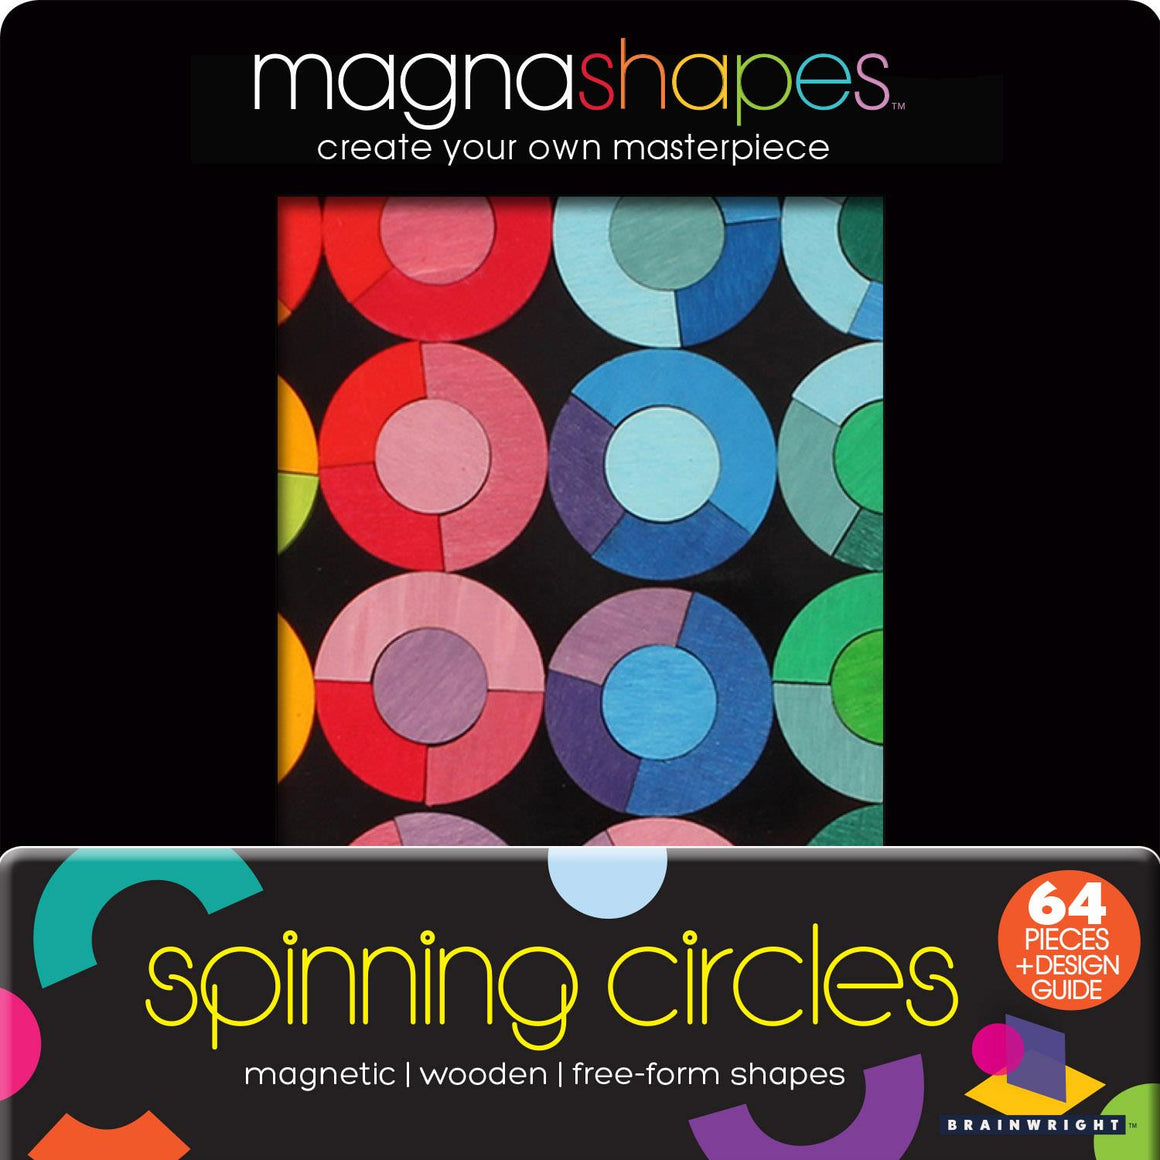 Spinning Circles | Magnashapes | The Gifted Type